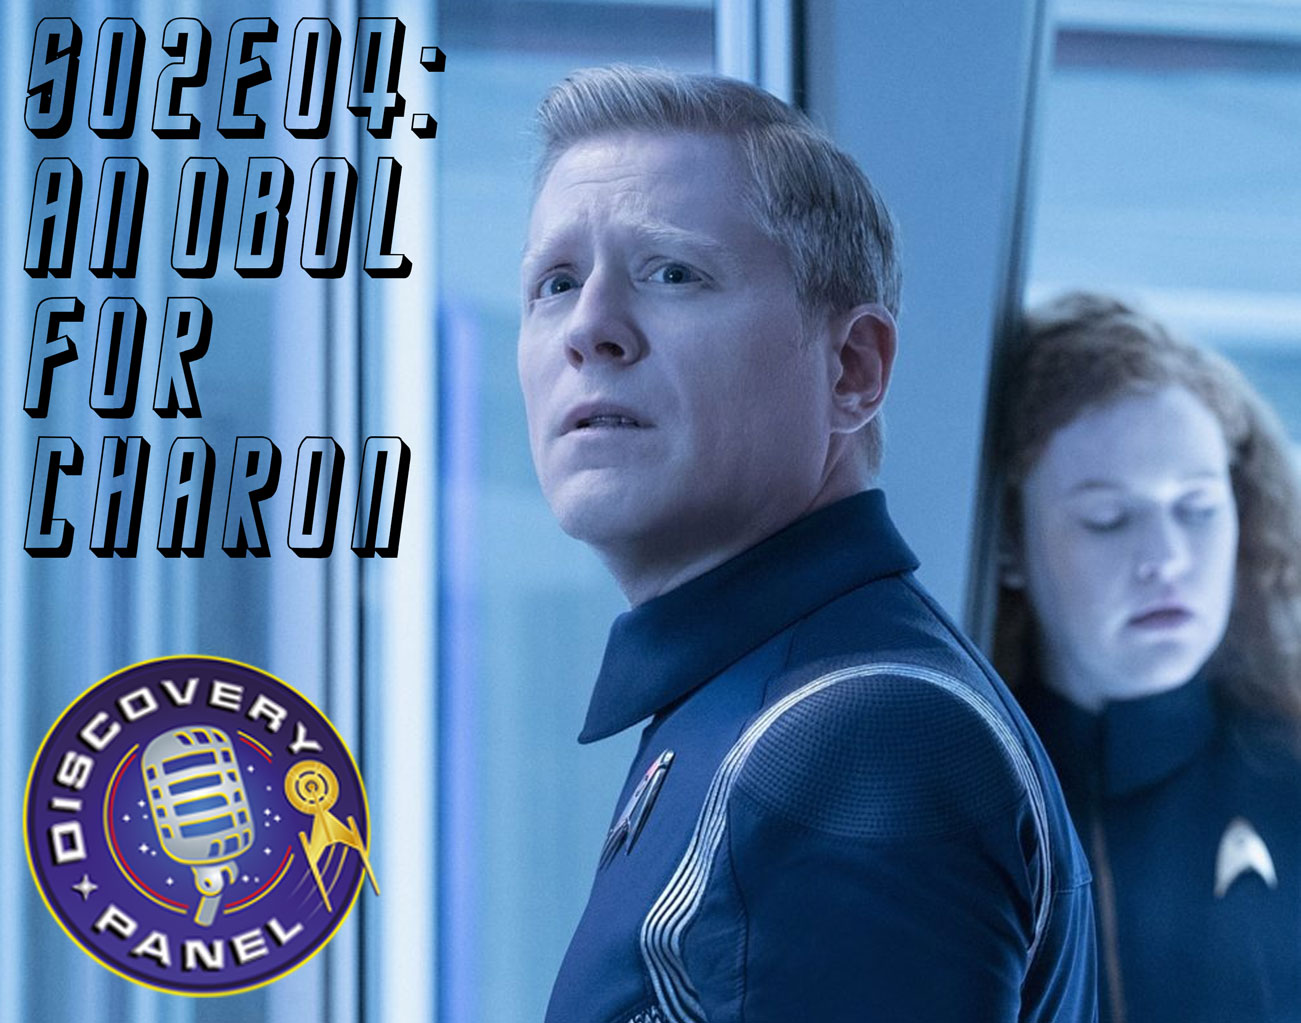 S02E04: An Obol for Charon